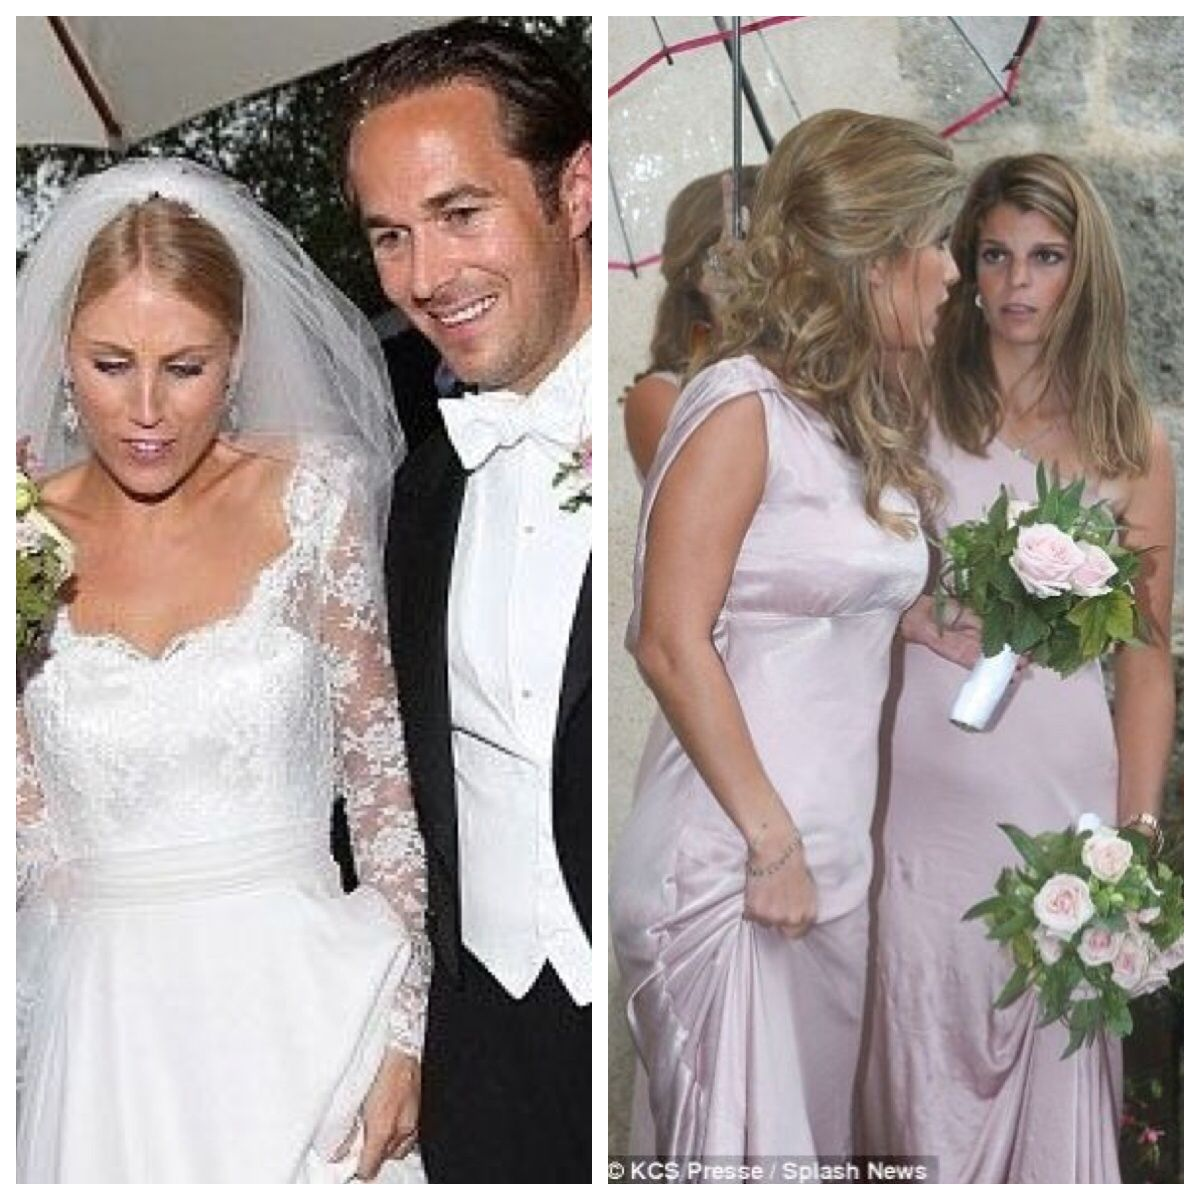 Sandrine Roussel Wedding Athina Onassis Was A Bridesmaid In Her Half Sisters